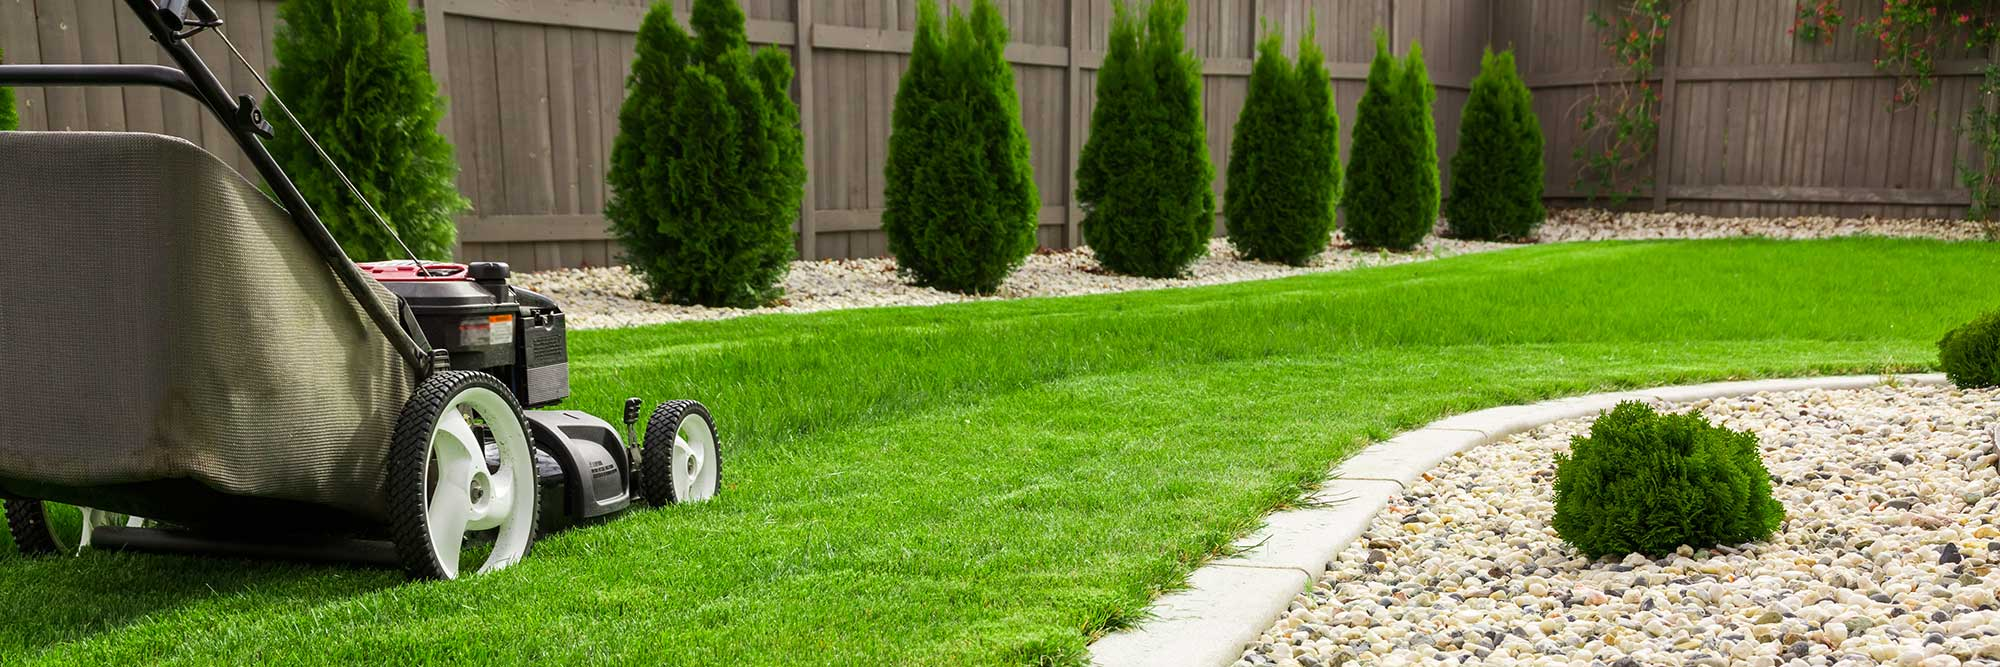 Innovative Lawn Care Solutions